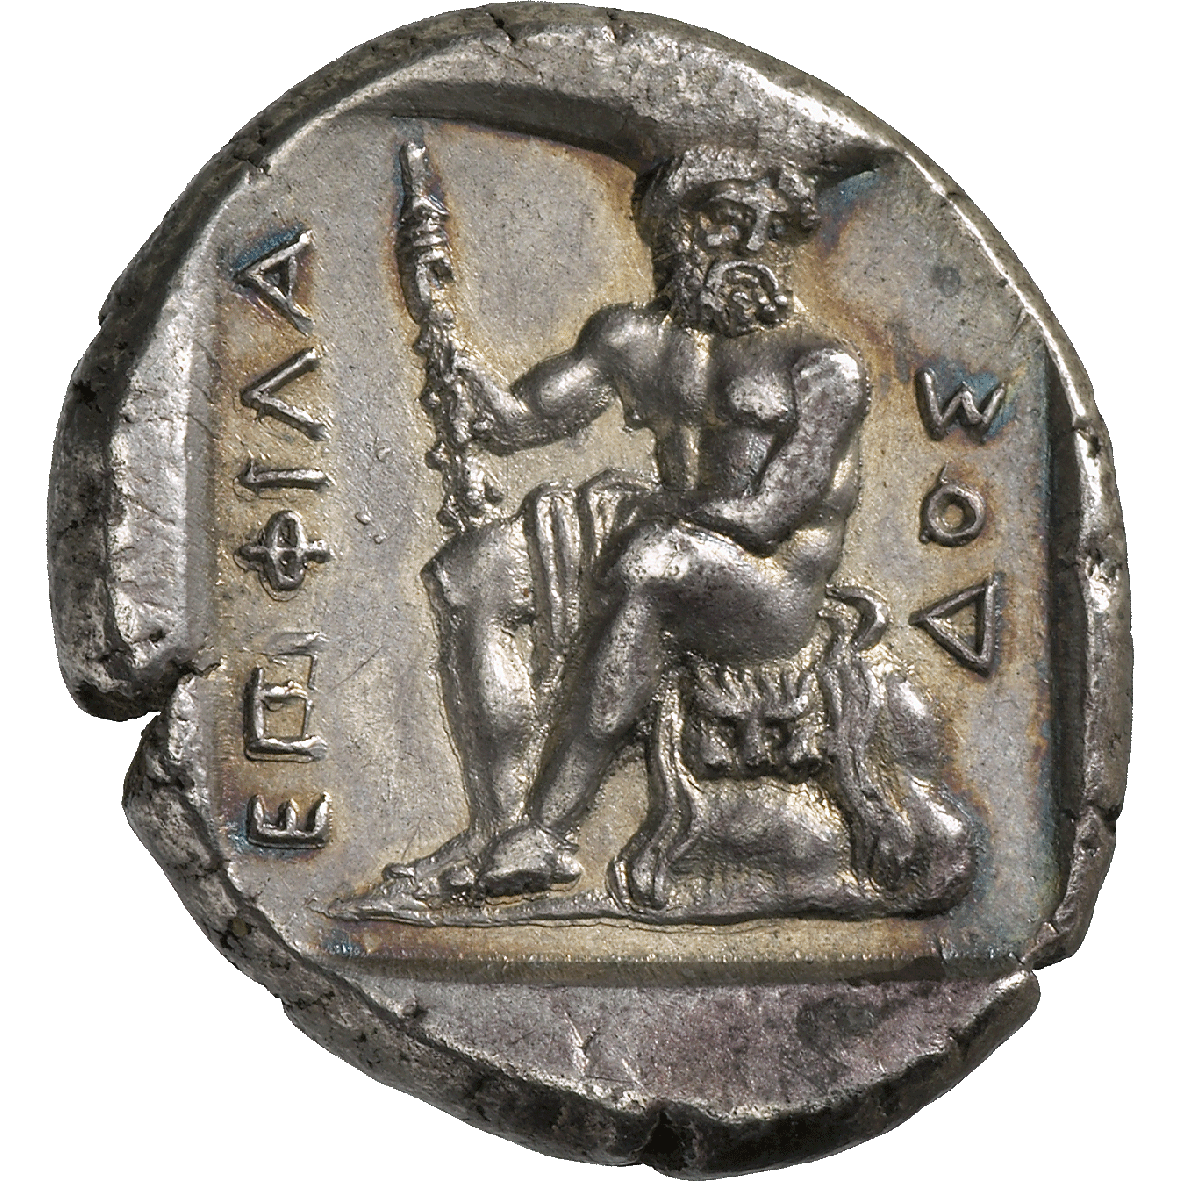 Thrace, City of Abdera, Stater (reverse)